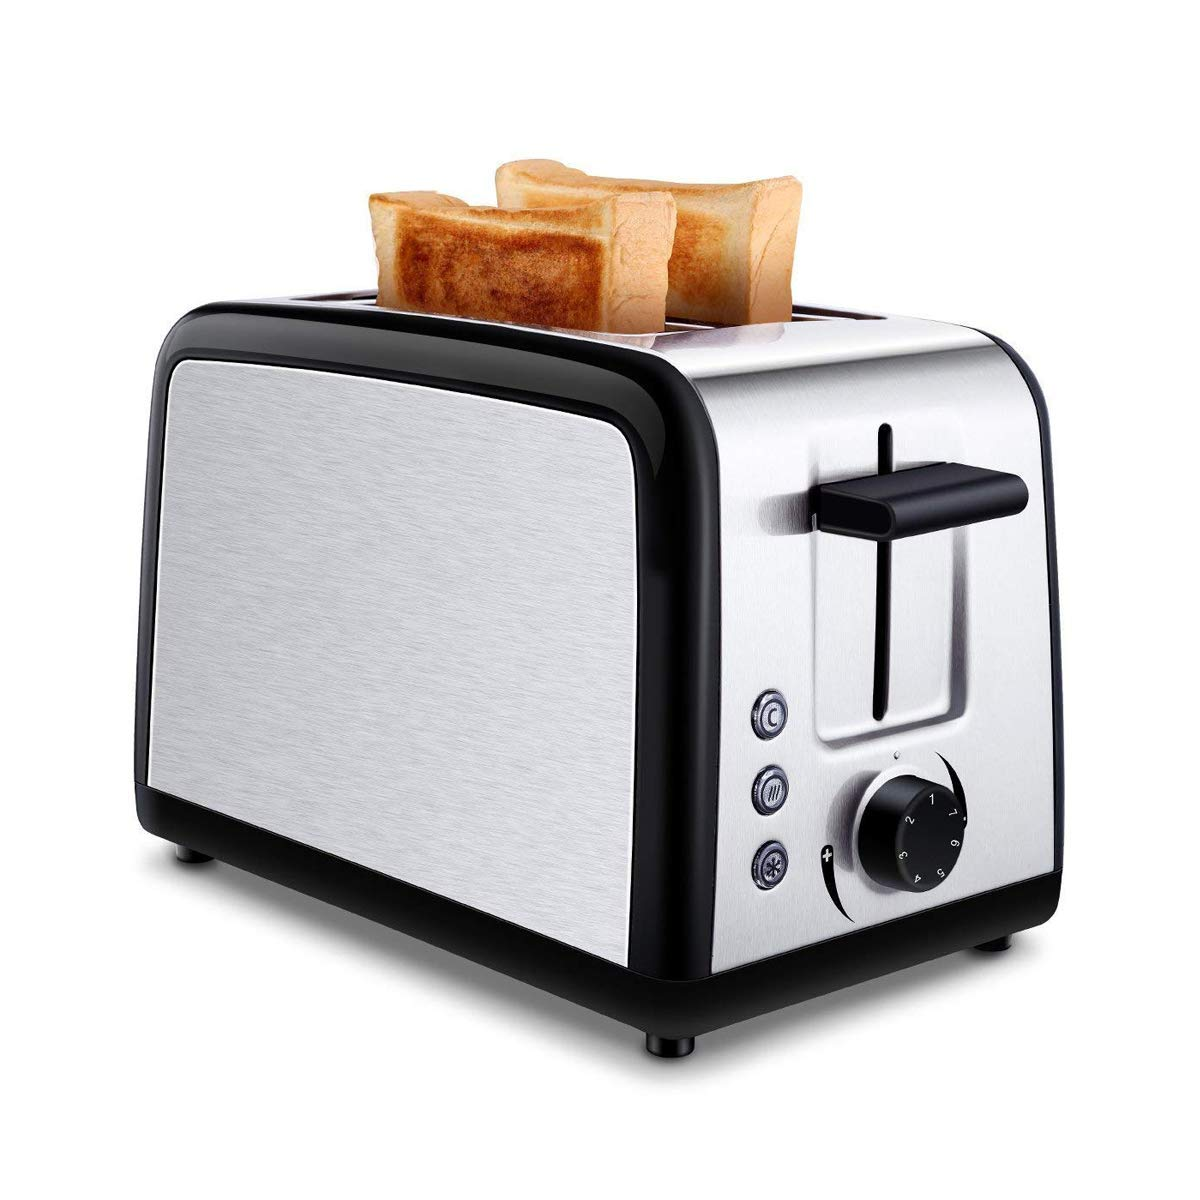 ToBox CB-ST002 CT-ST002 2 Slice Toasters with 2 Extra-Wide Slots, Warming Rack, Defrost, Reheat and Cancel Buttons-Brushed Stainless Steel, Silver